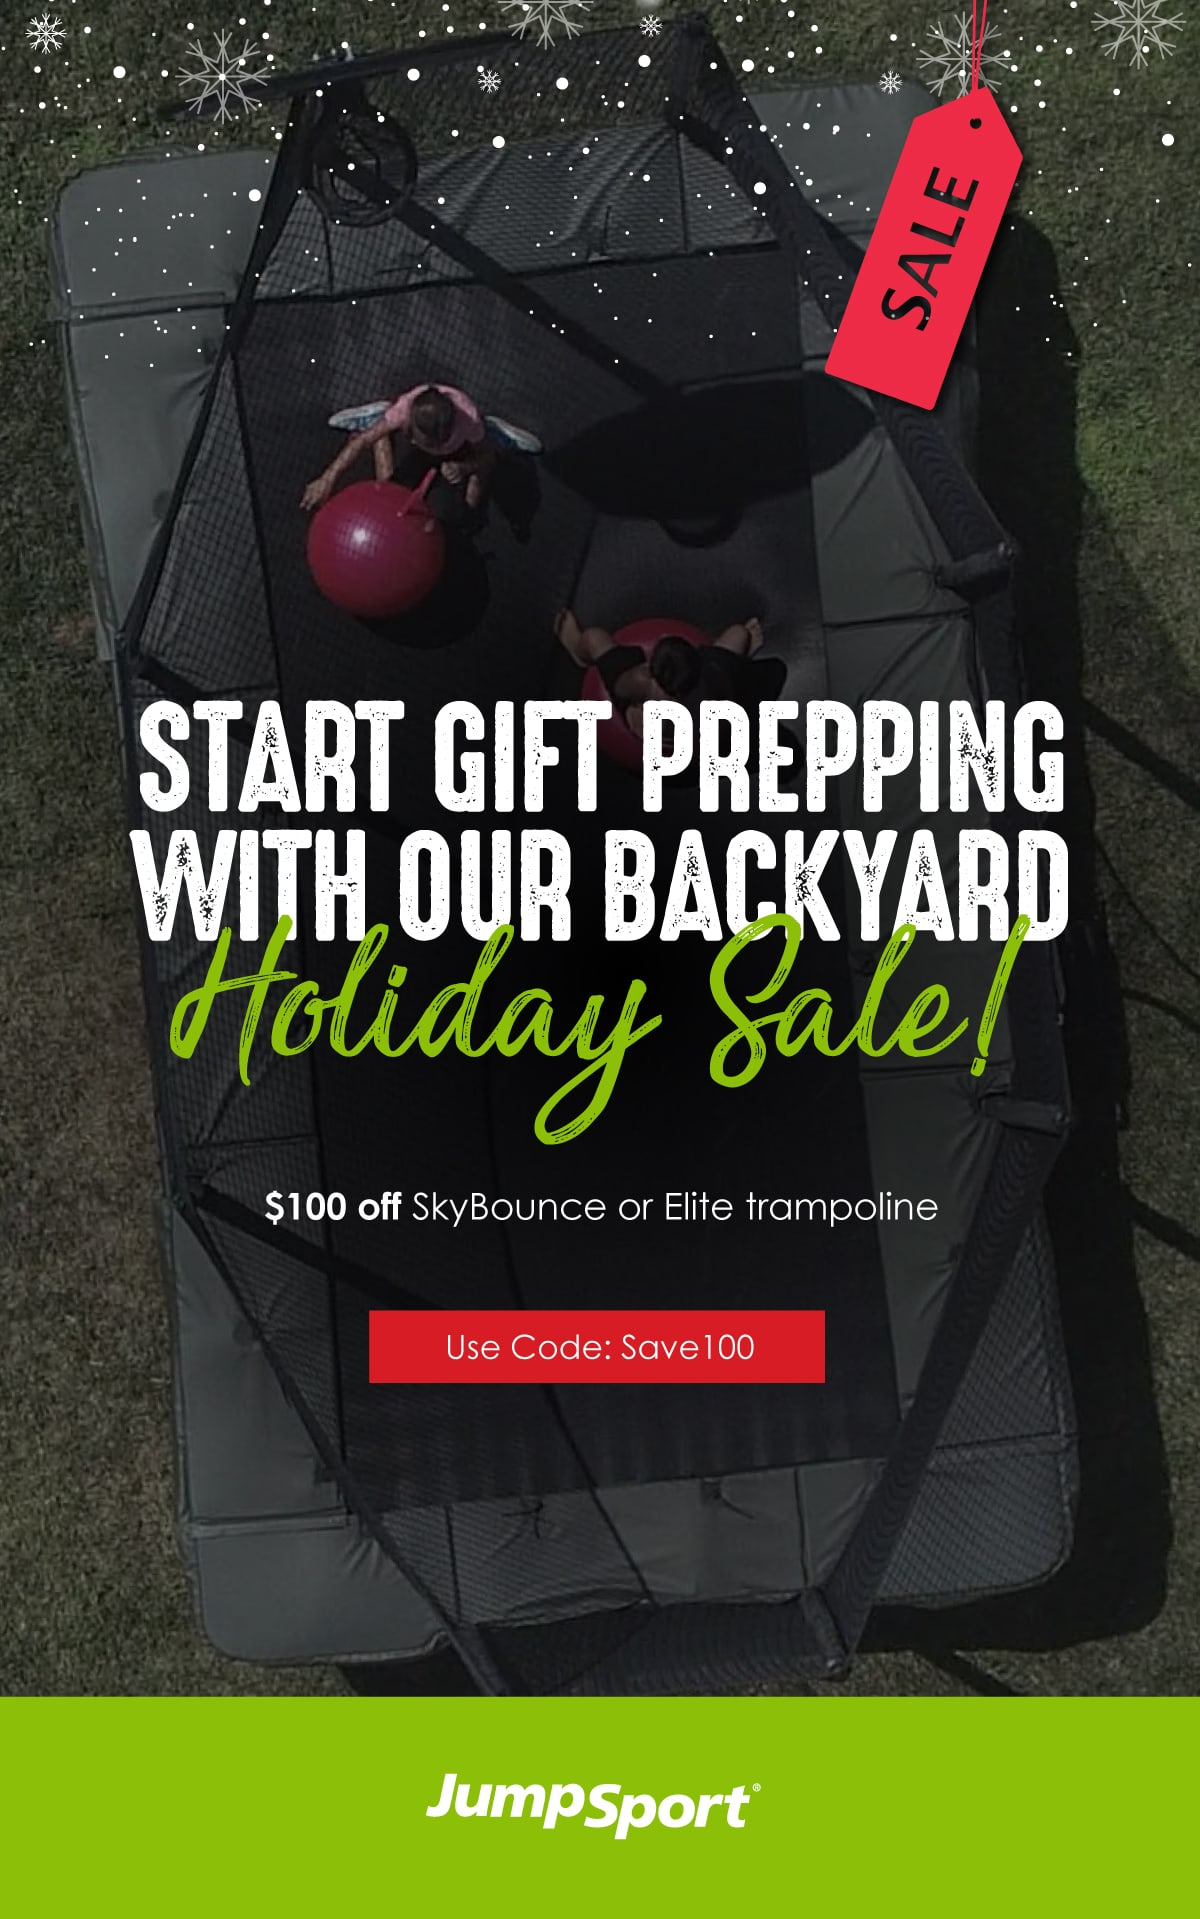 Start gift prepping with our Backyard Holiday Sale! $100 off SkyBounce or Elite trampoline. Use Code: Save100